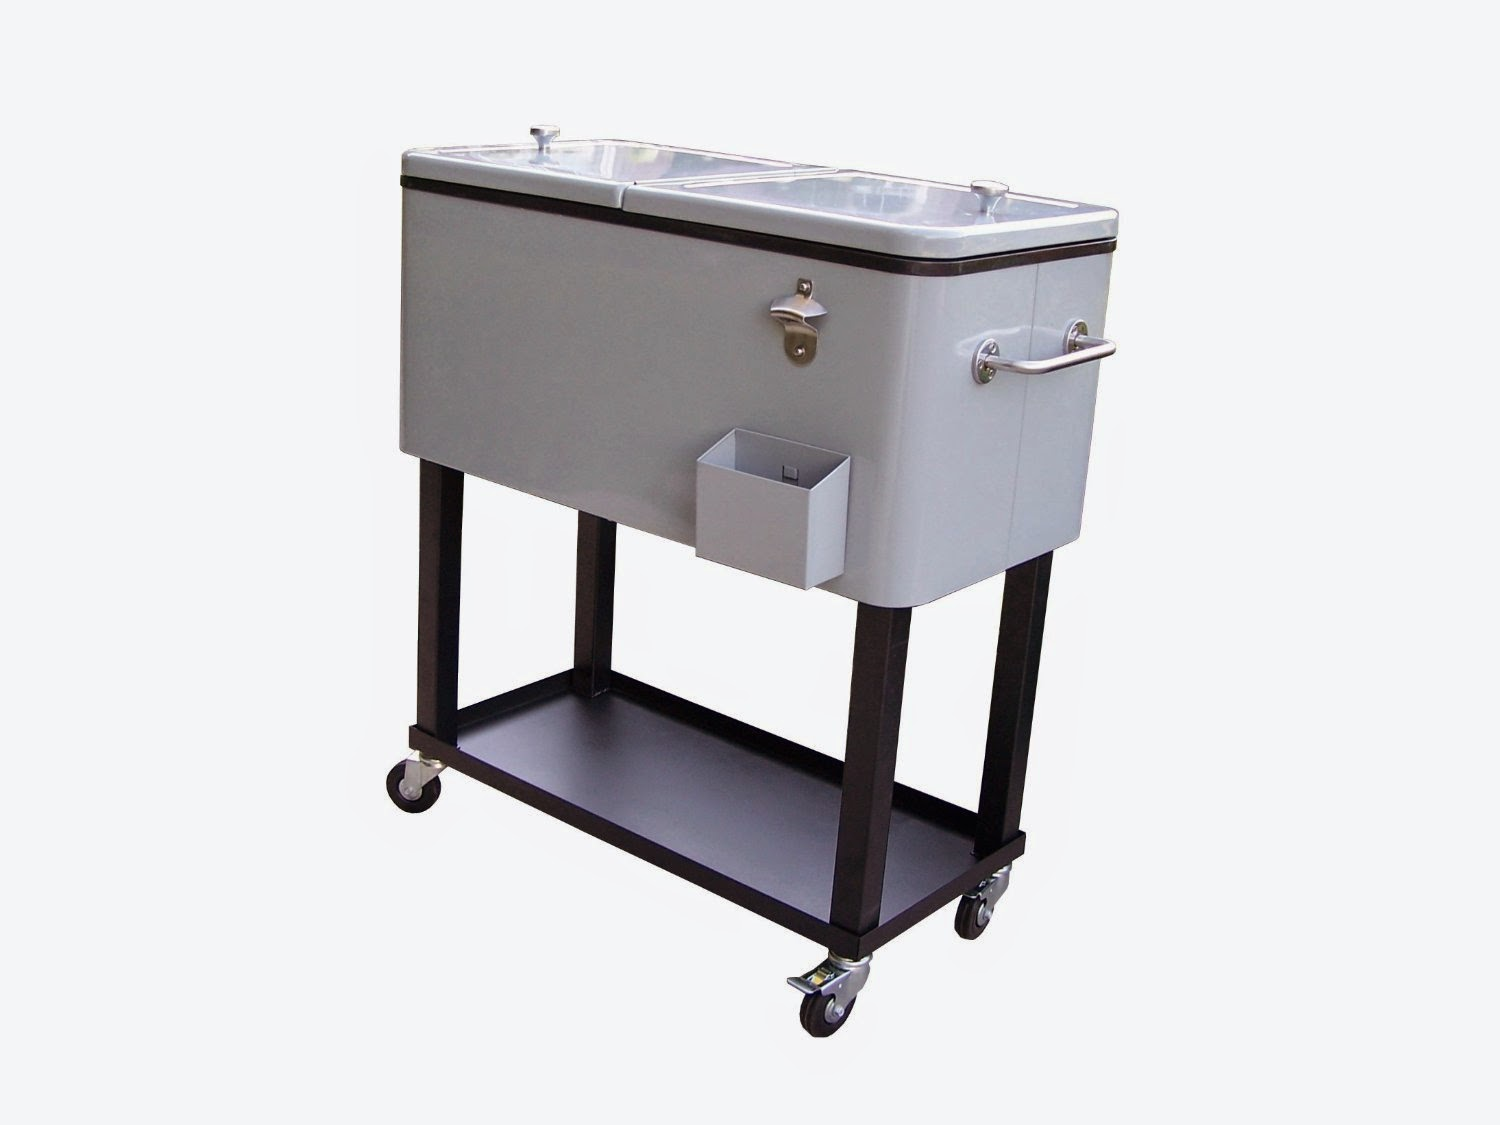 80 Quart Metallic Grey Patio Coolers On Wheels